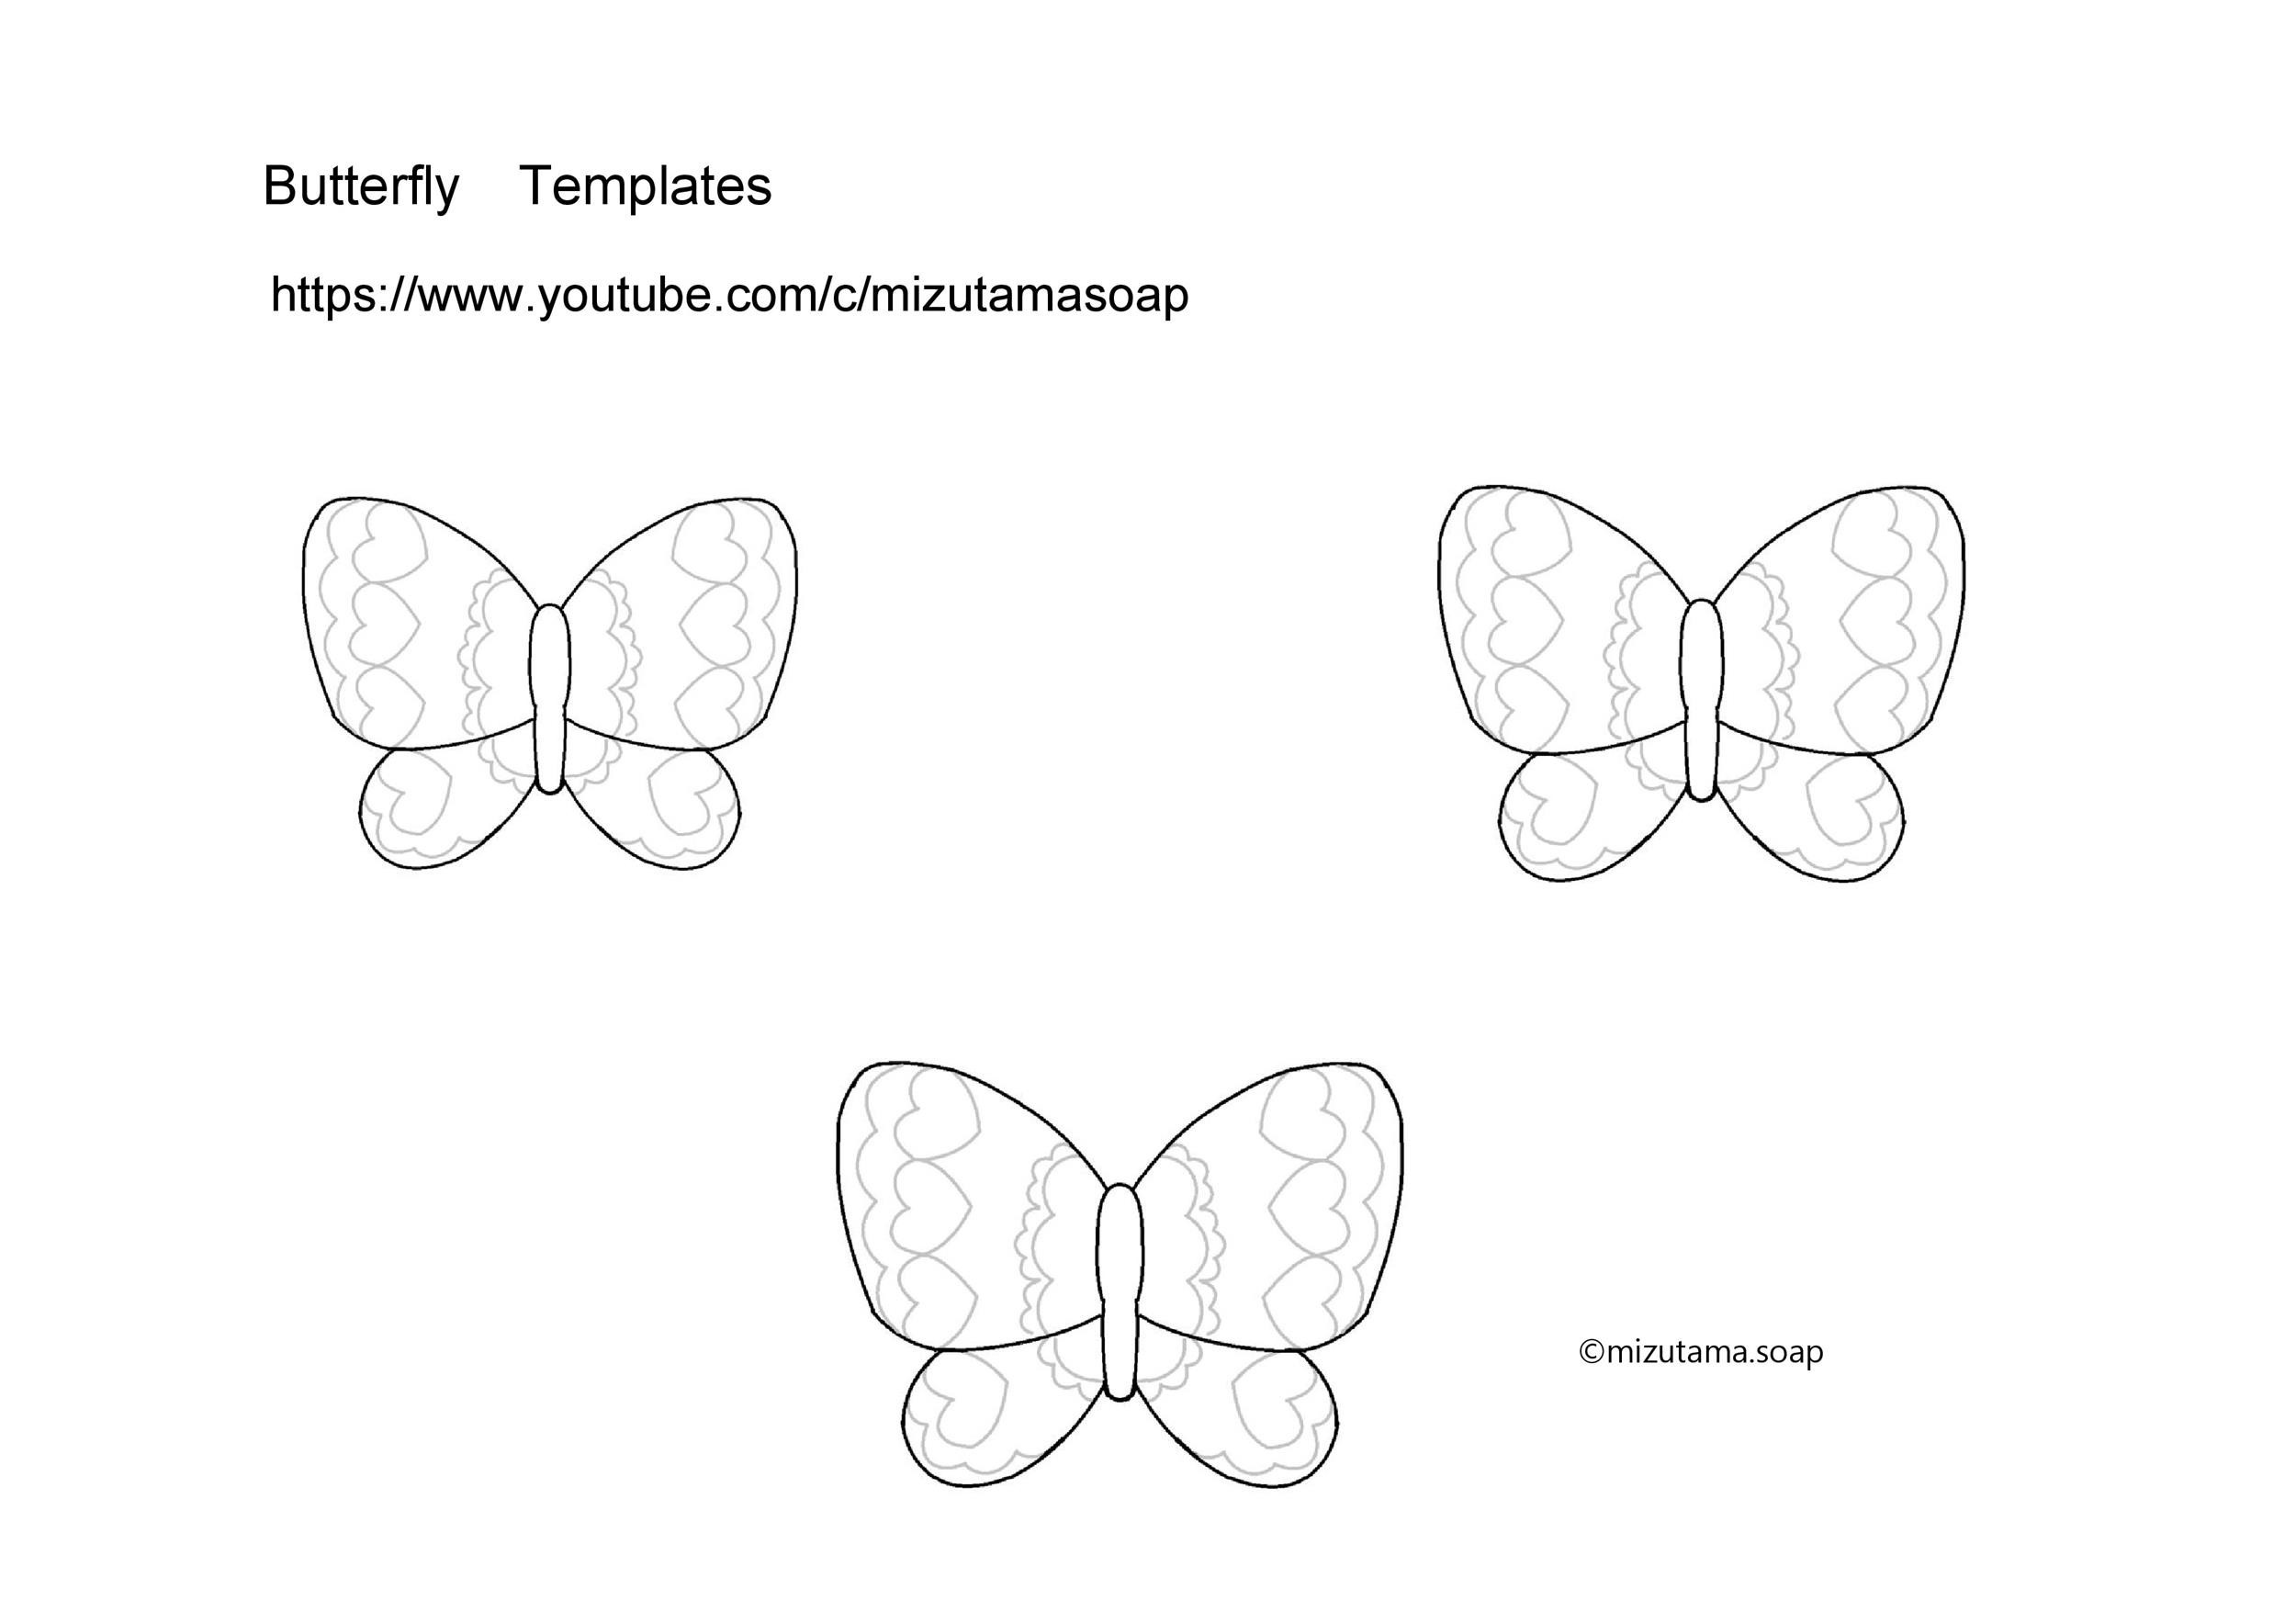 Butterfly Cut Out Template from templatelab.com